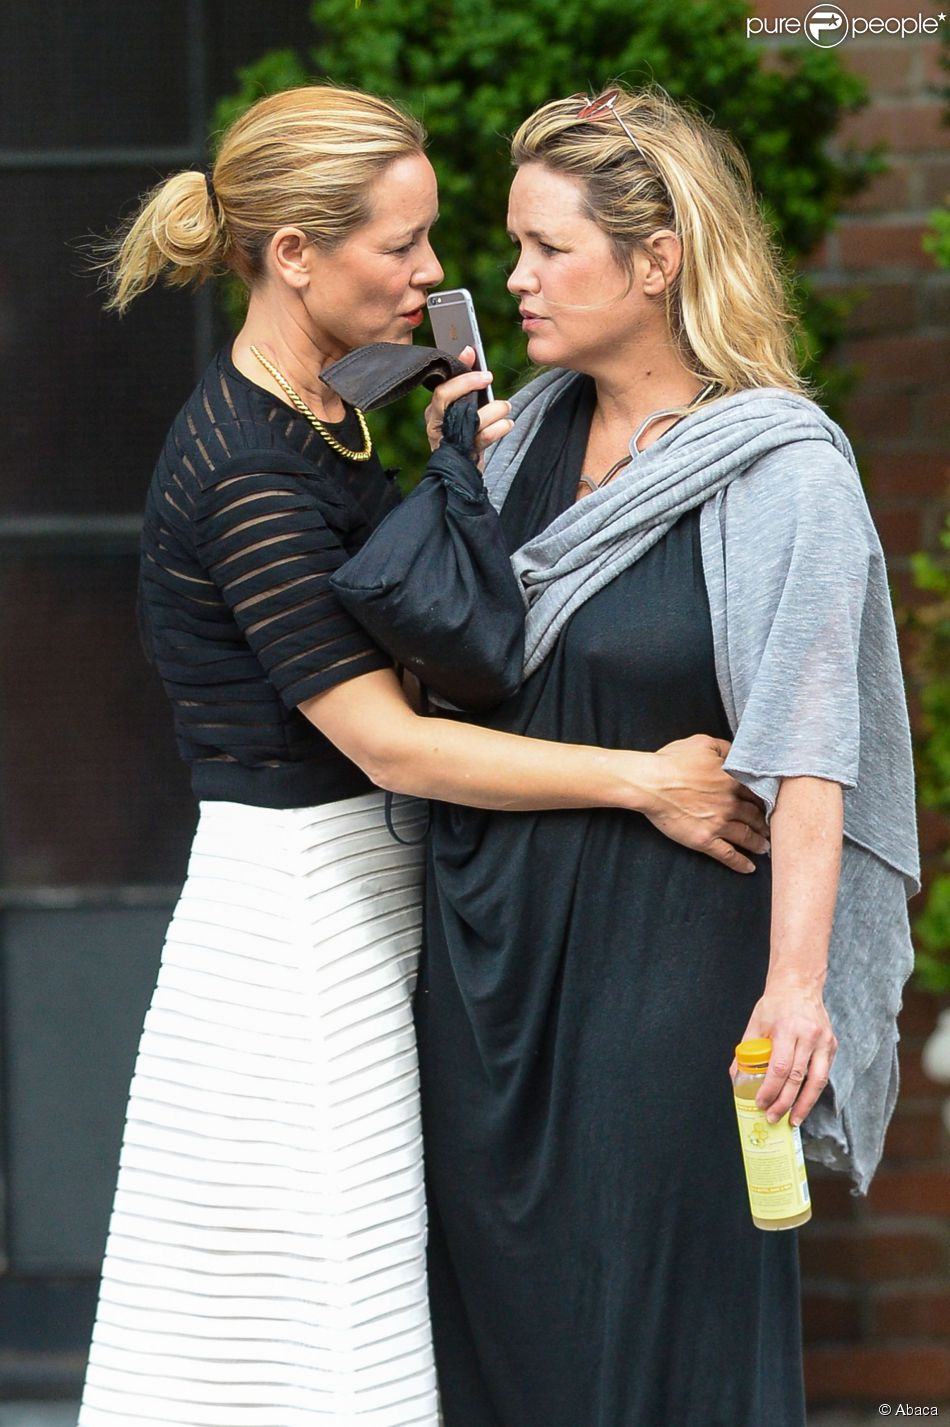 Claire Munn And Maria Bello Pictures to Pin on Pinterest ...